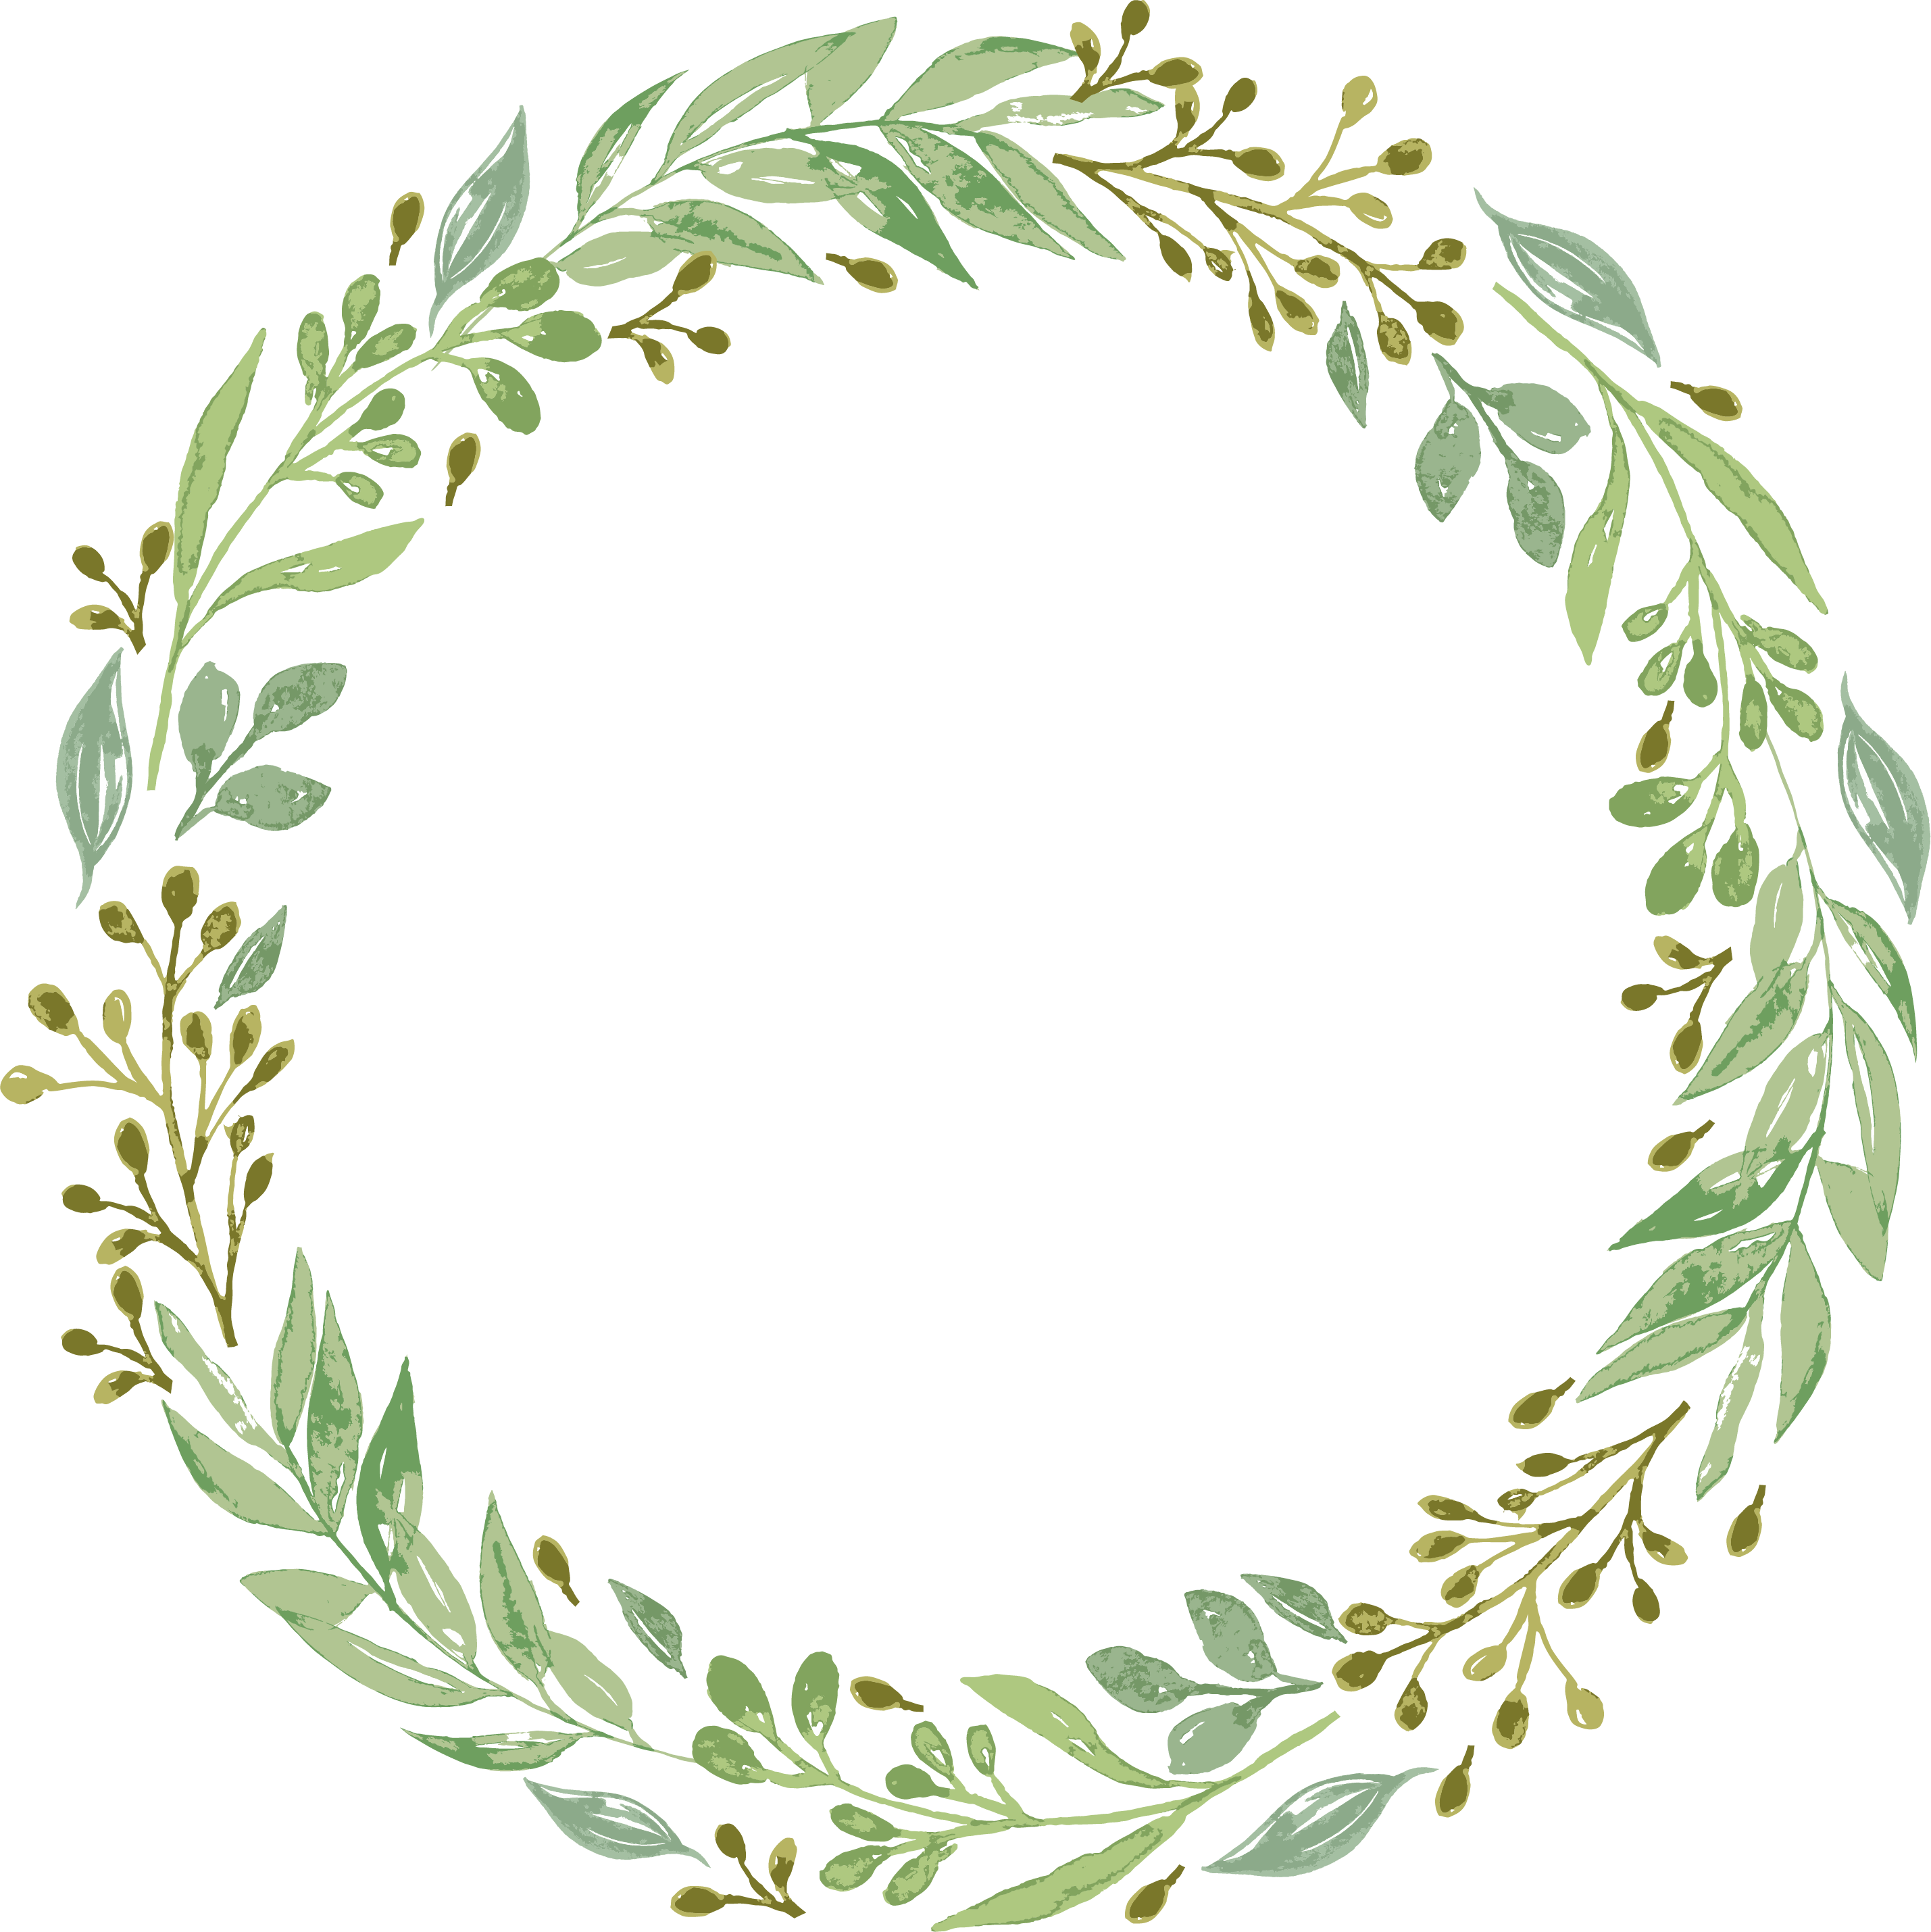 Download Vector Free Stock Leaf Garland Clipart.